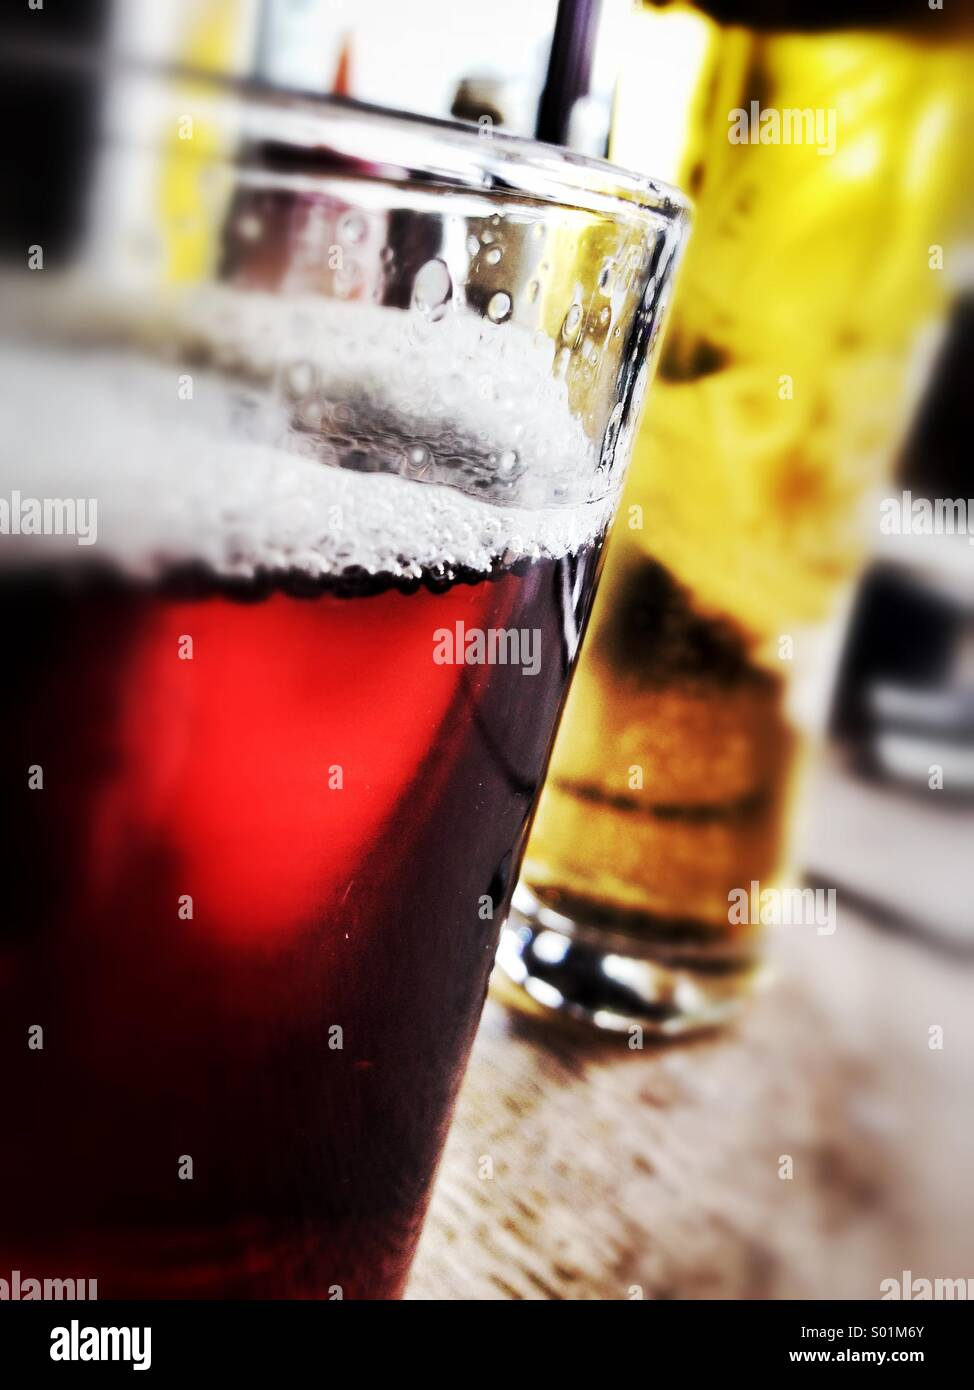 Beer and Lager in An English pub - Stock Image